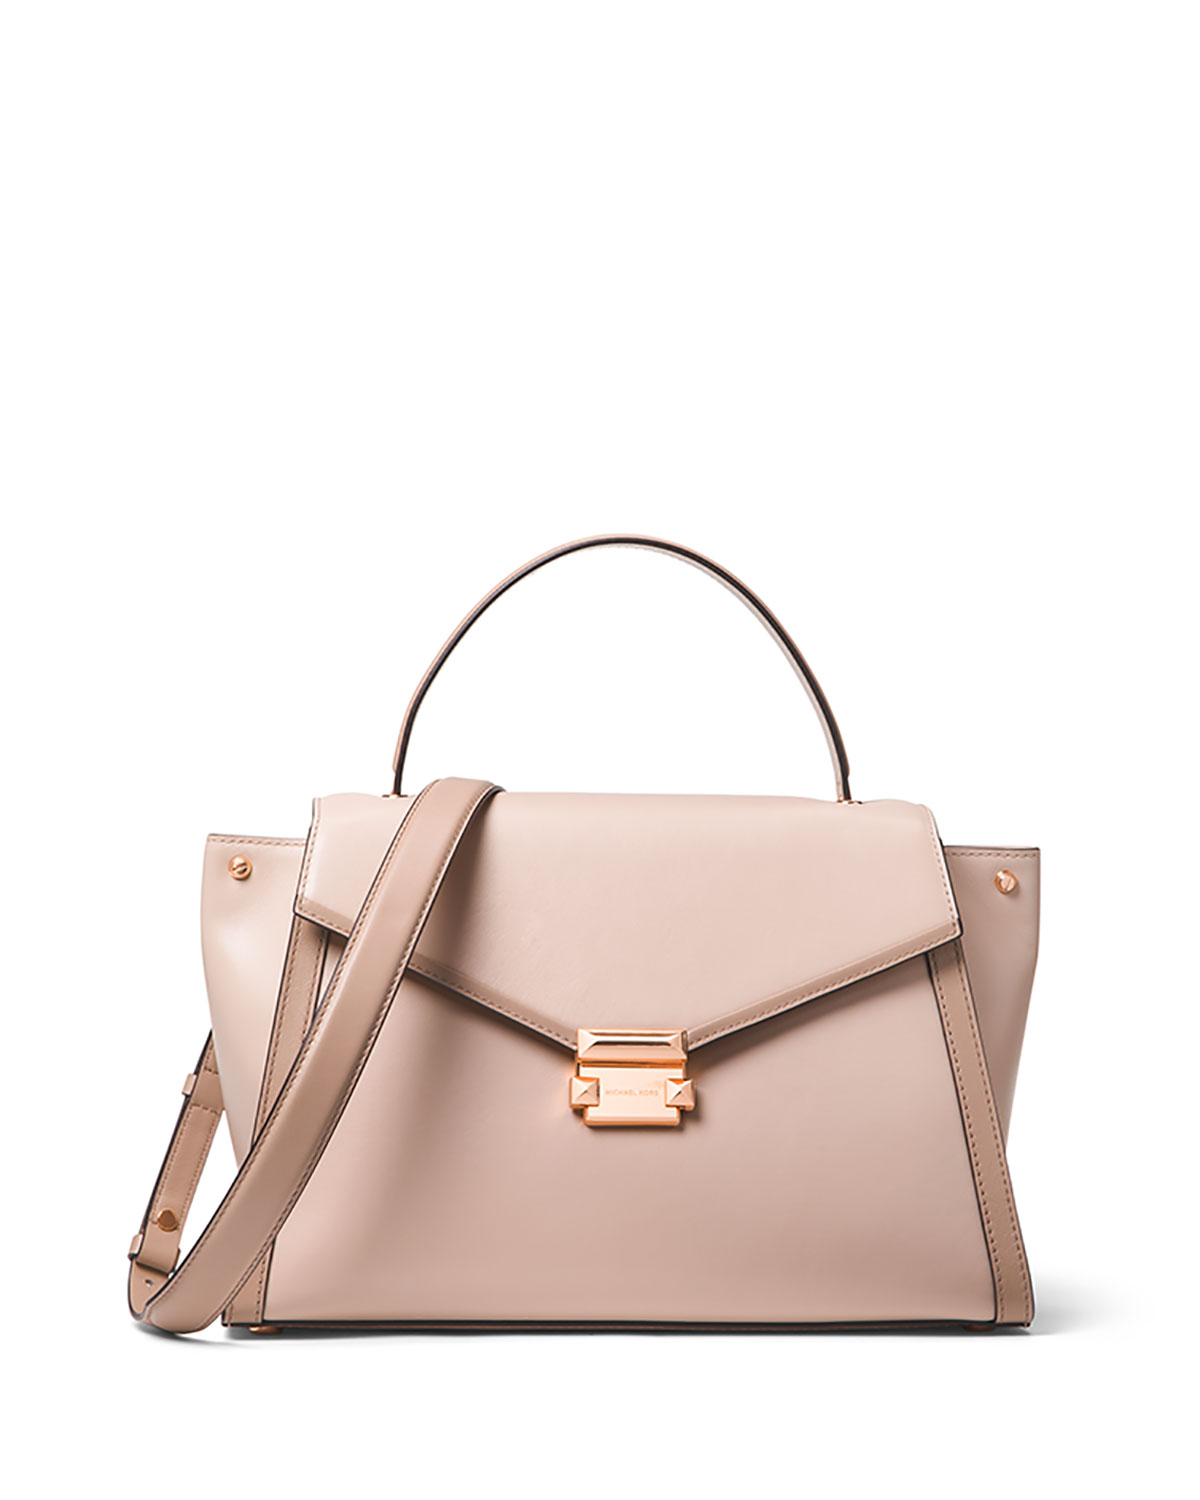 e2faff1229dd Whitney Large Leather Top-Handle Satchel Bag. MICHAEL Michael Kors Whitney  Large Top-Handle ...